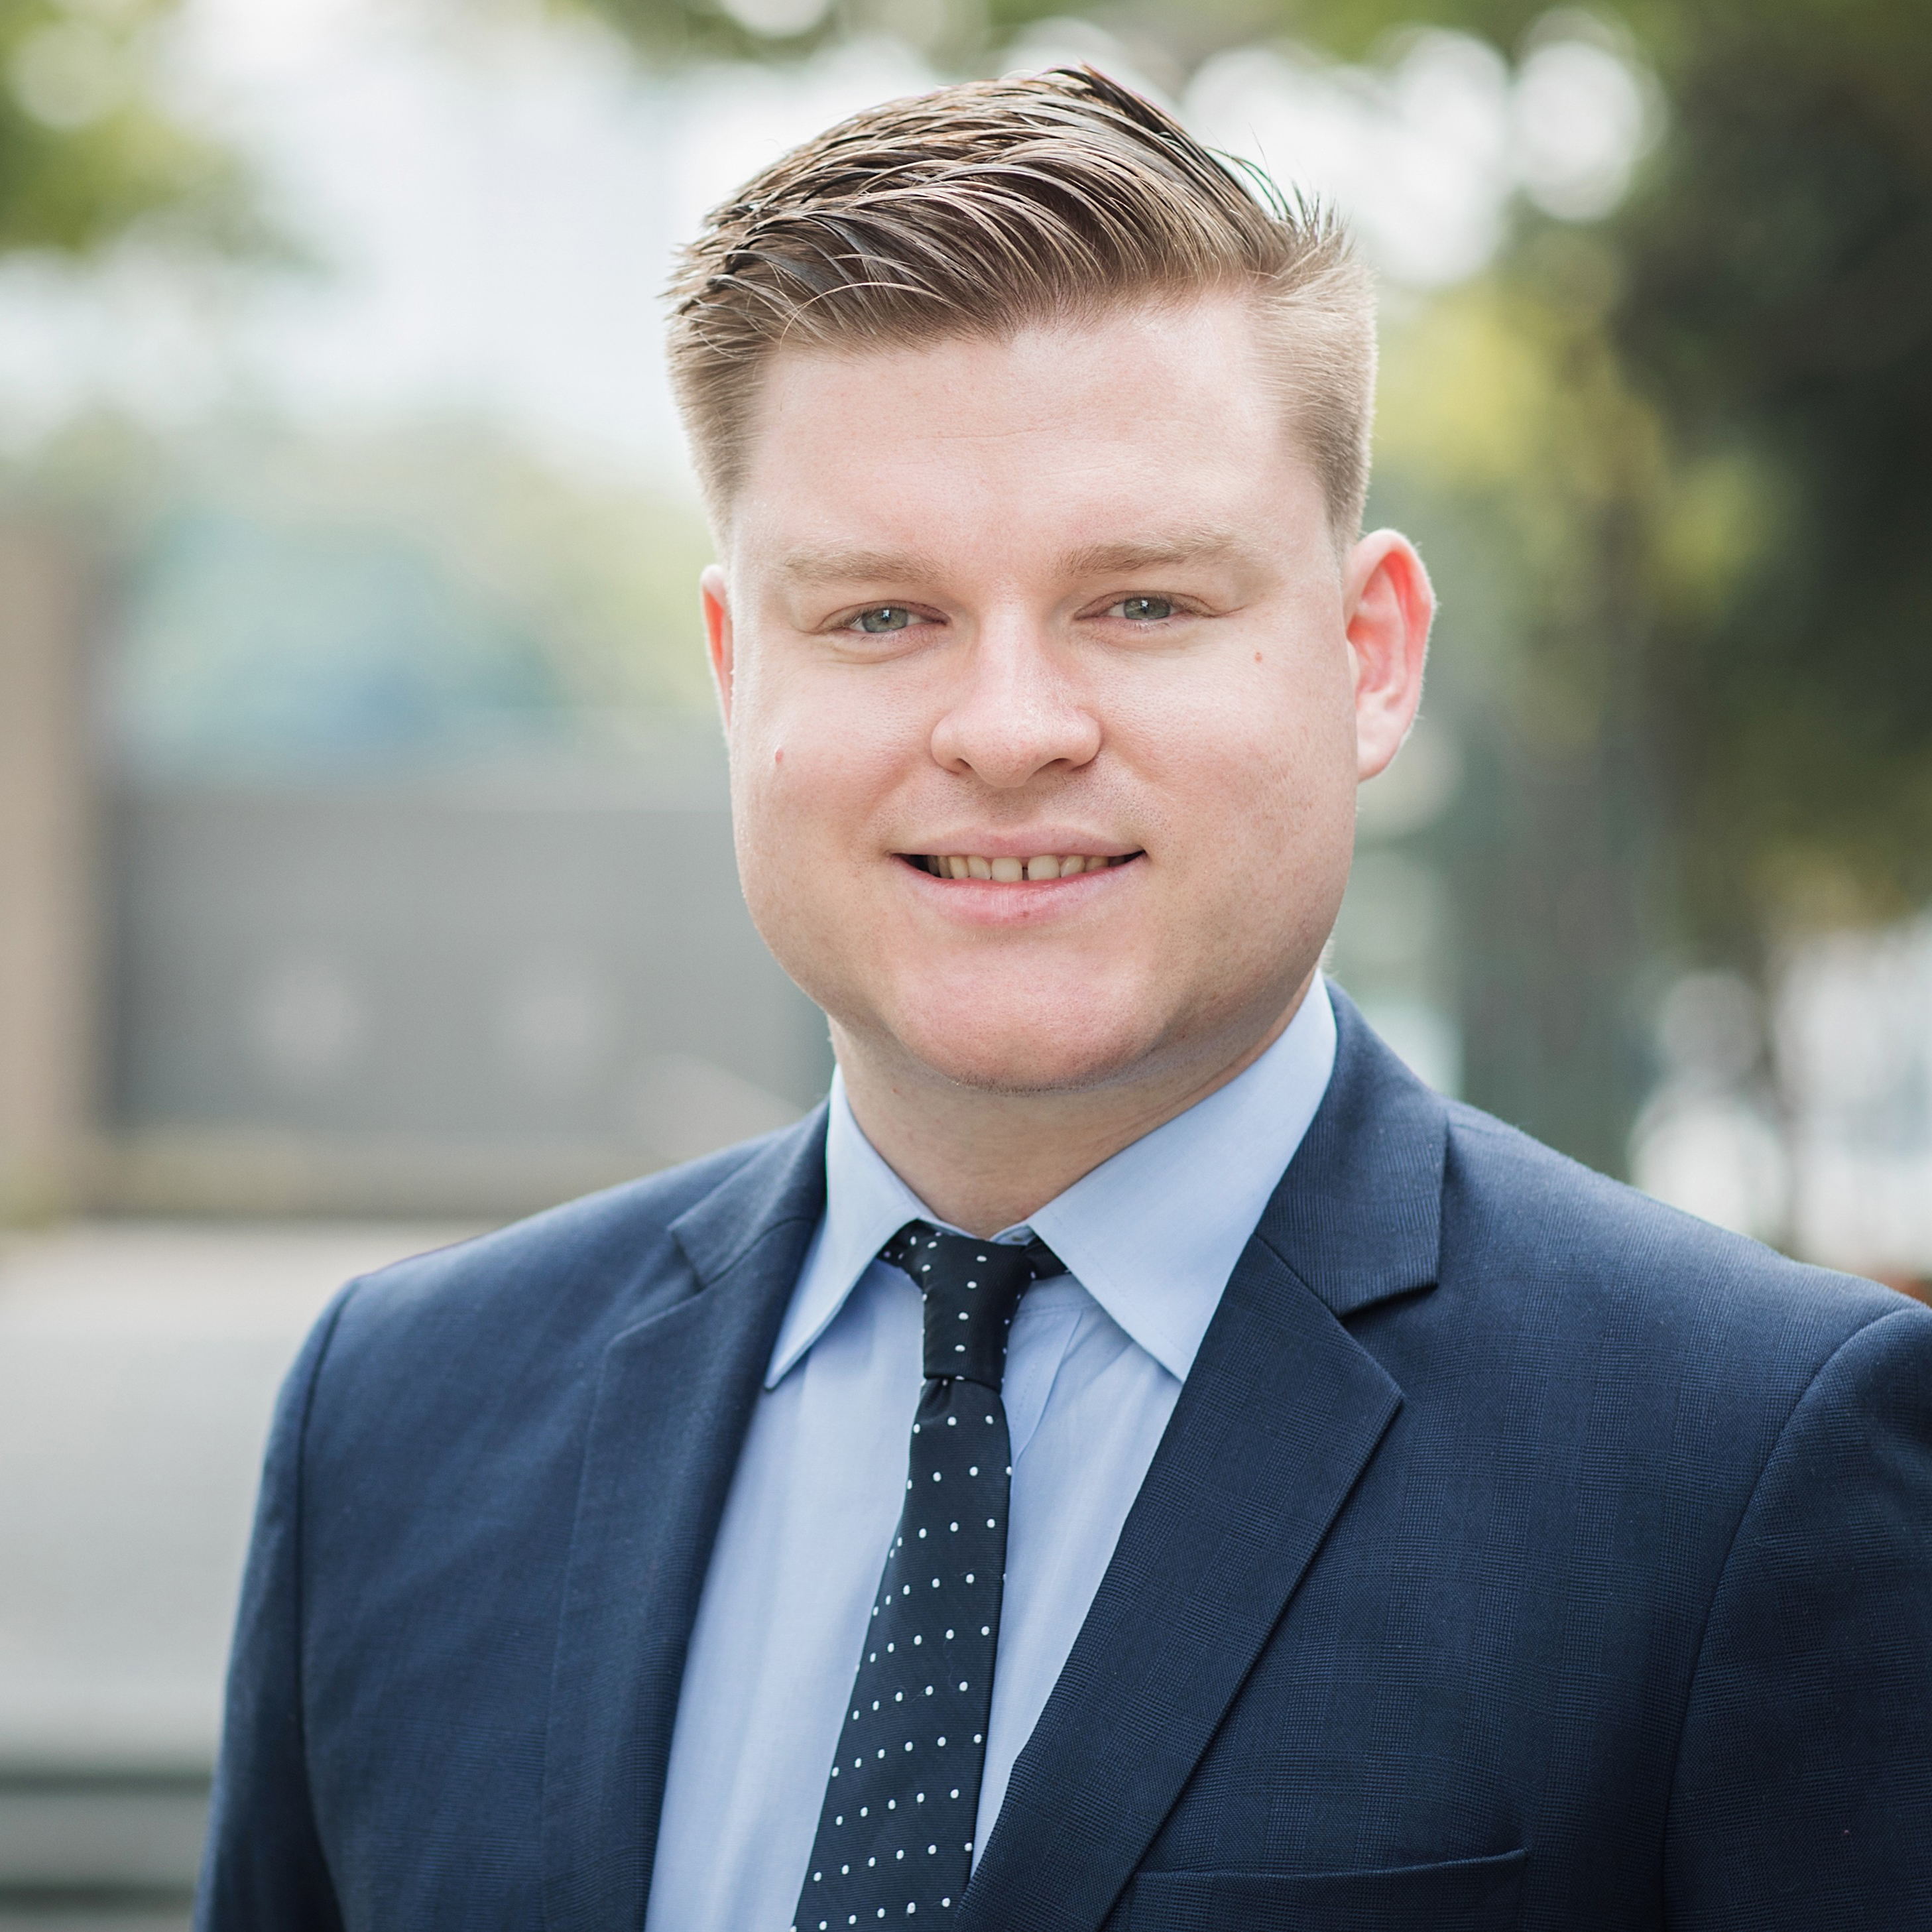 Steven Holm is an associate in Milbank's Singapore office and a member of the firm's Global Capital Markets Group